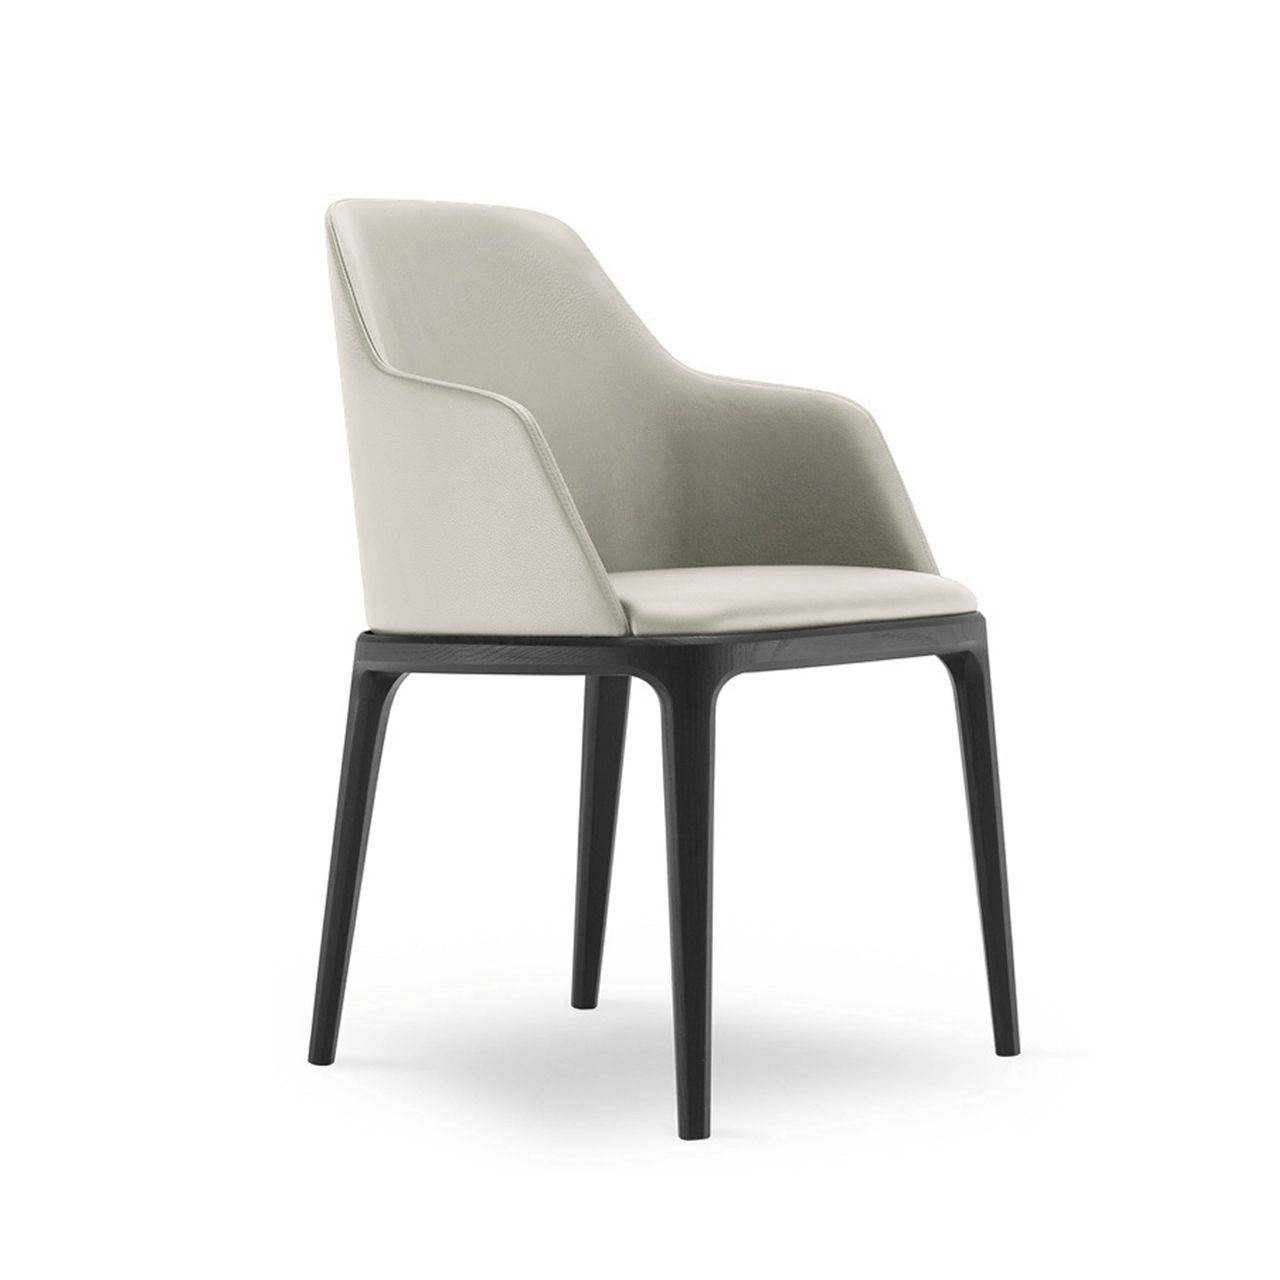 Fabulous Chloe Dining Chair Black Stained Legs Dining Room Caraccident5 Cool Chair Designs And Ideas Caraccident5Info